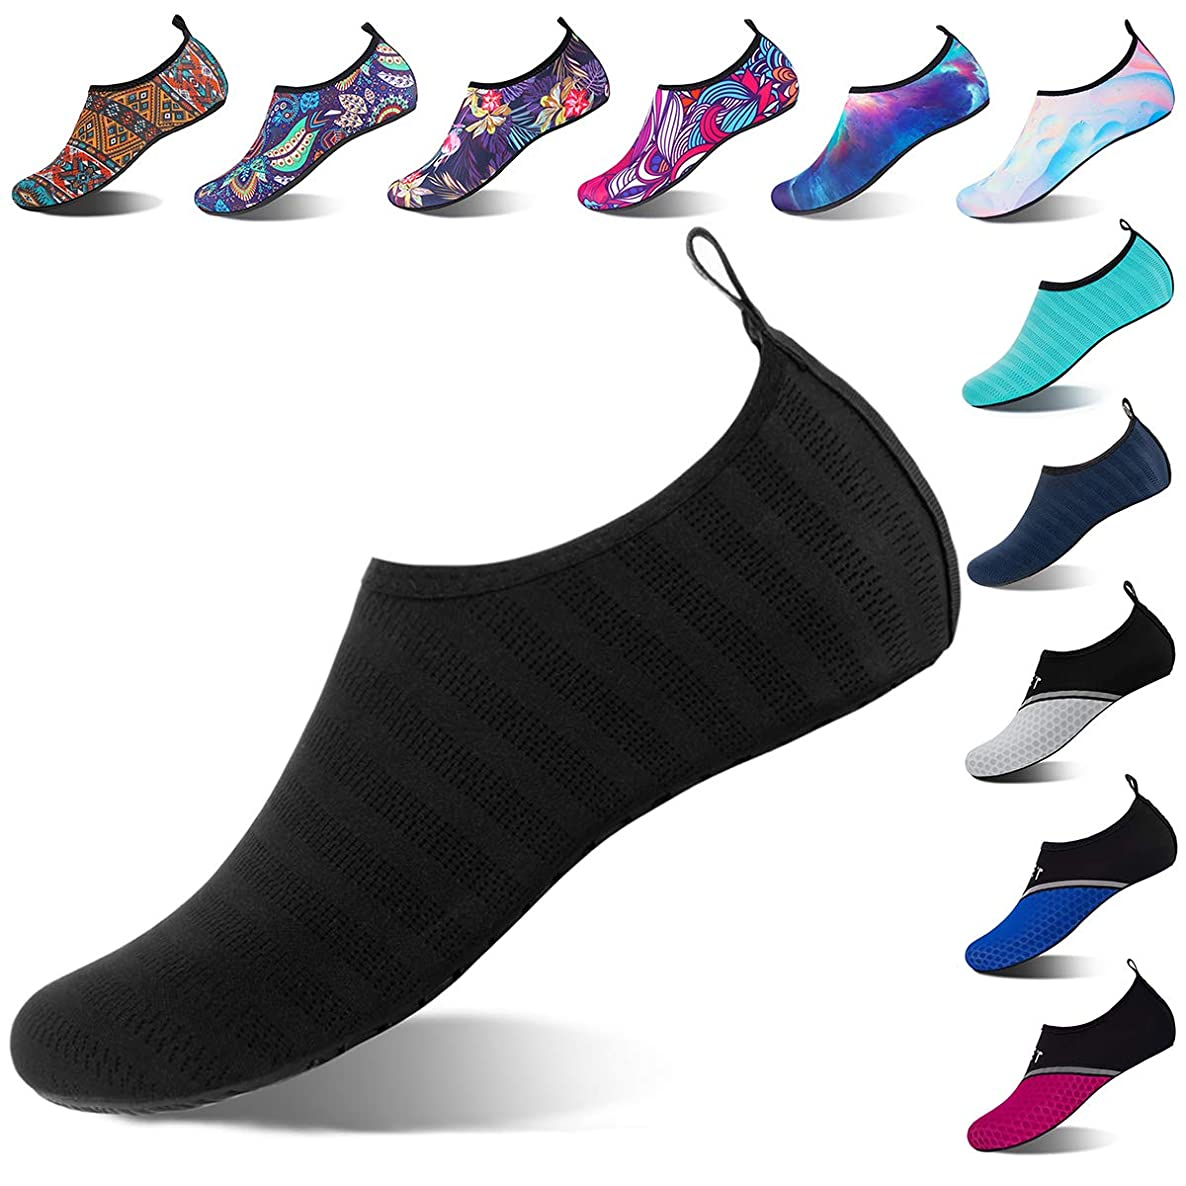 Water Shoes for Womens and Mens Summer Barefoot Shoes Quick Dry Aqua Socks for Beach Swim Yoga Exercise zpjbkqsxnmcniwls